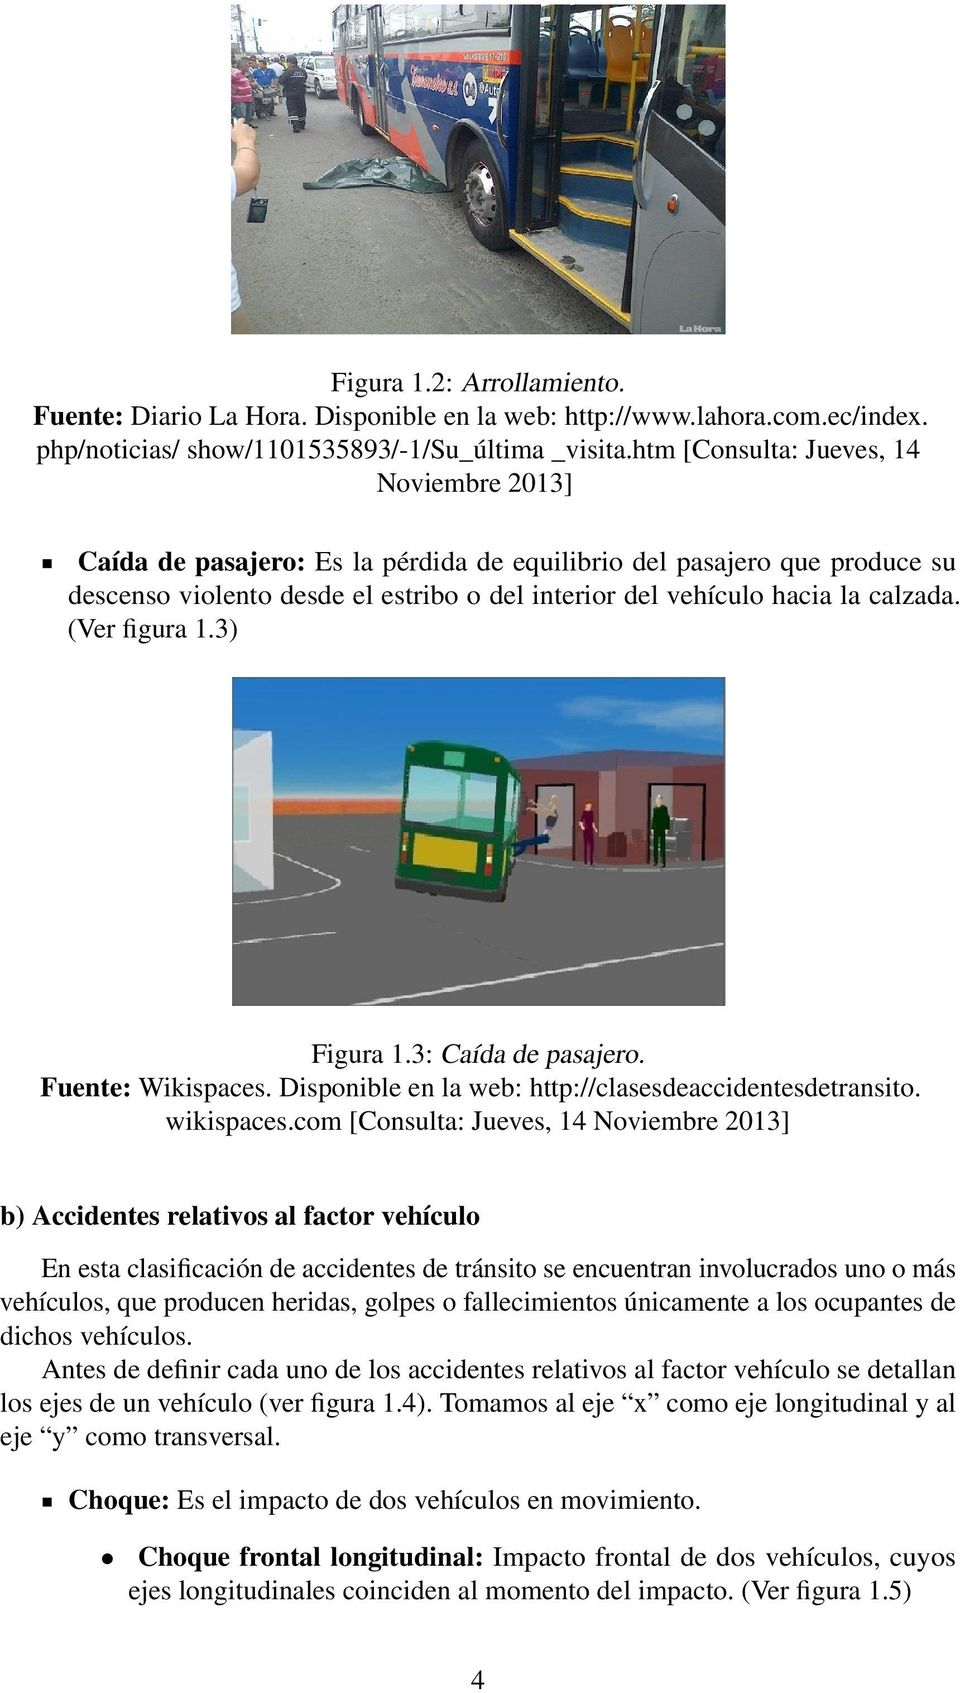 (Ver figura 1.3) Figura 1.3: Caída de pasajero. Fuente: Wikispaces. Disponible en la web: http://clasesdeaccidentesdetransito. wikispaces.